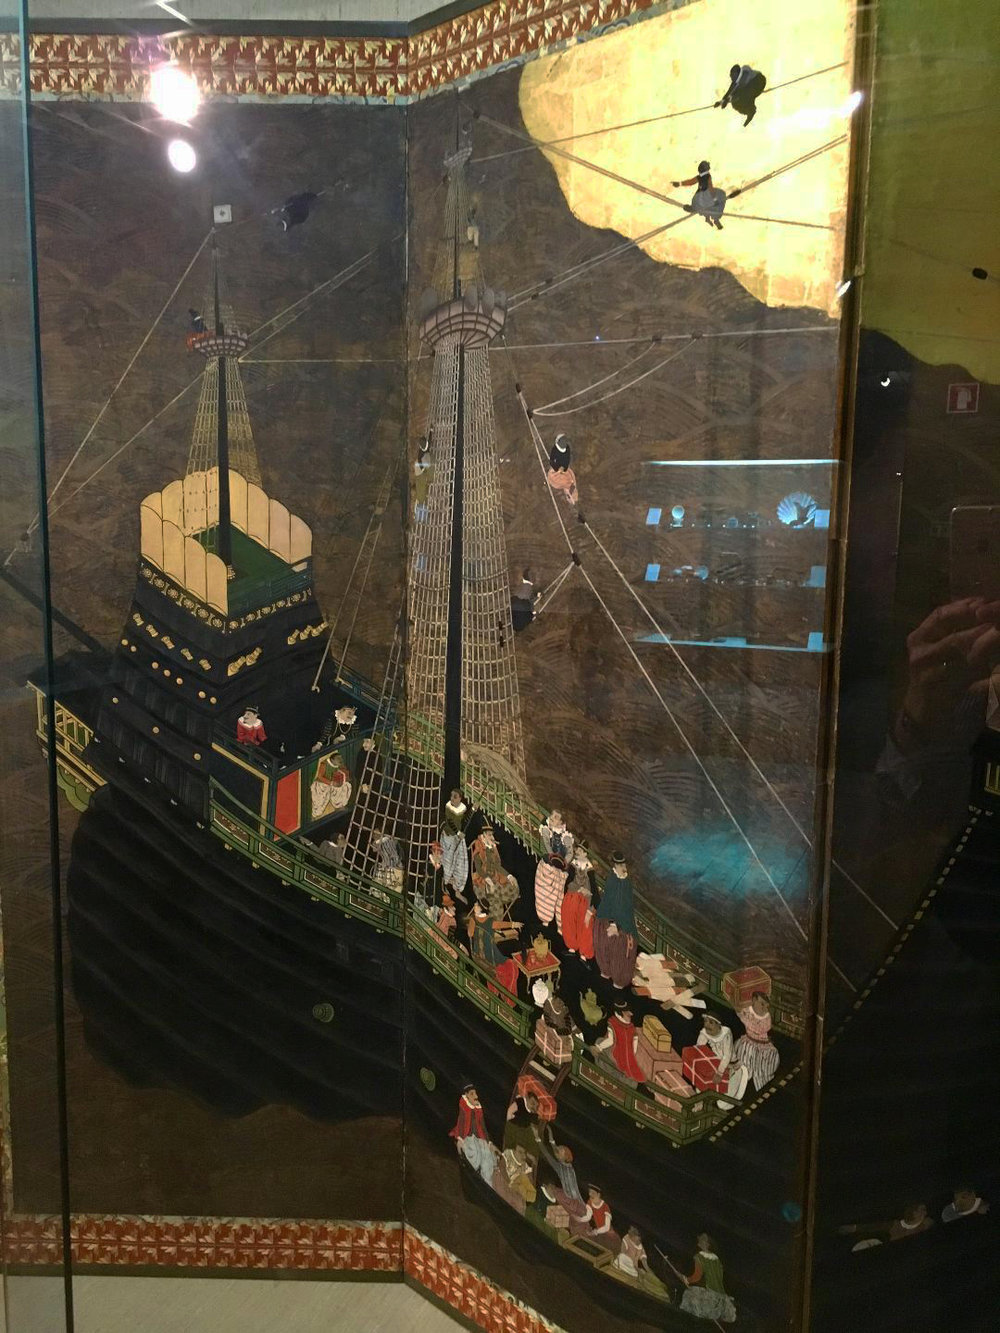 Detail of Portuguese ship. Namban screen. Attributed to Kano Domi, Japan, 1593-1602, Monoyama Period, tempera on paper, gold leaf, silk, lacquer, metal. Museu de Arte Antiga, Lisbon. ((Photograph J. Cook)